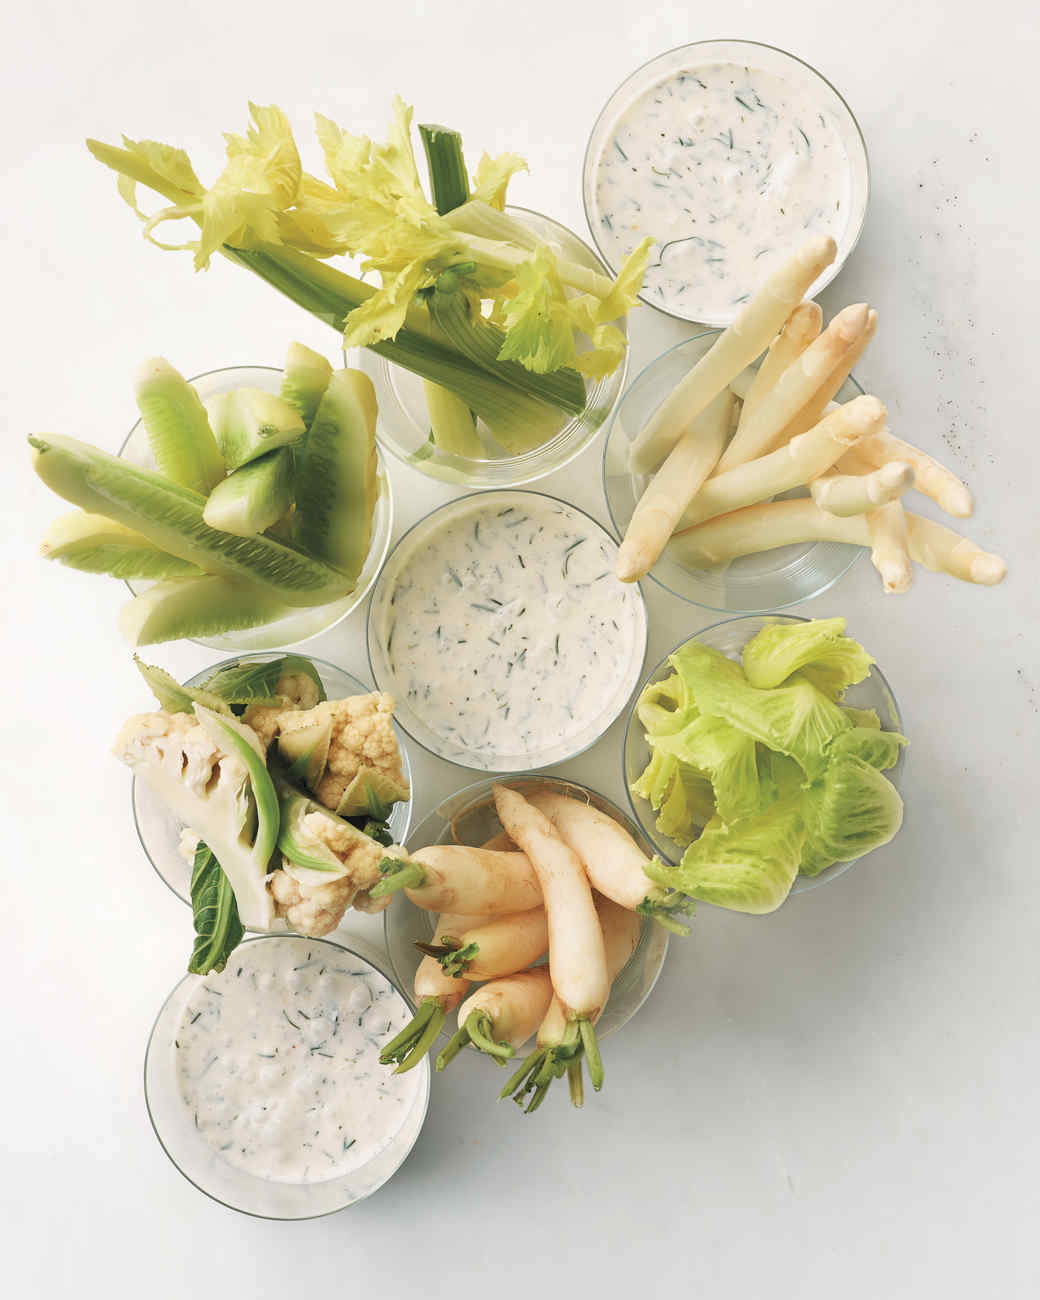 Winter Crudites with Buttermilk Dip